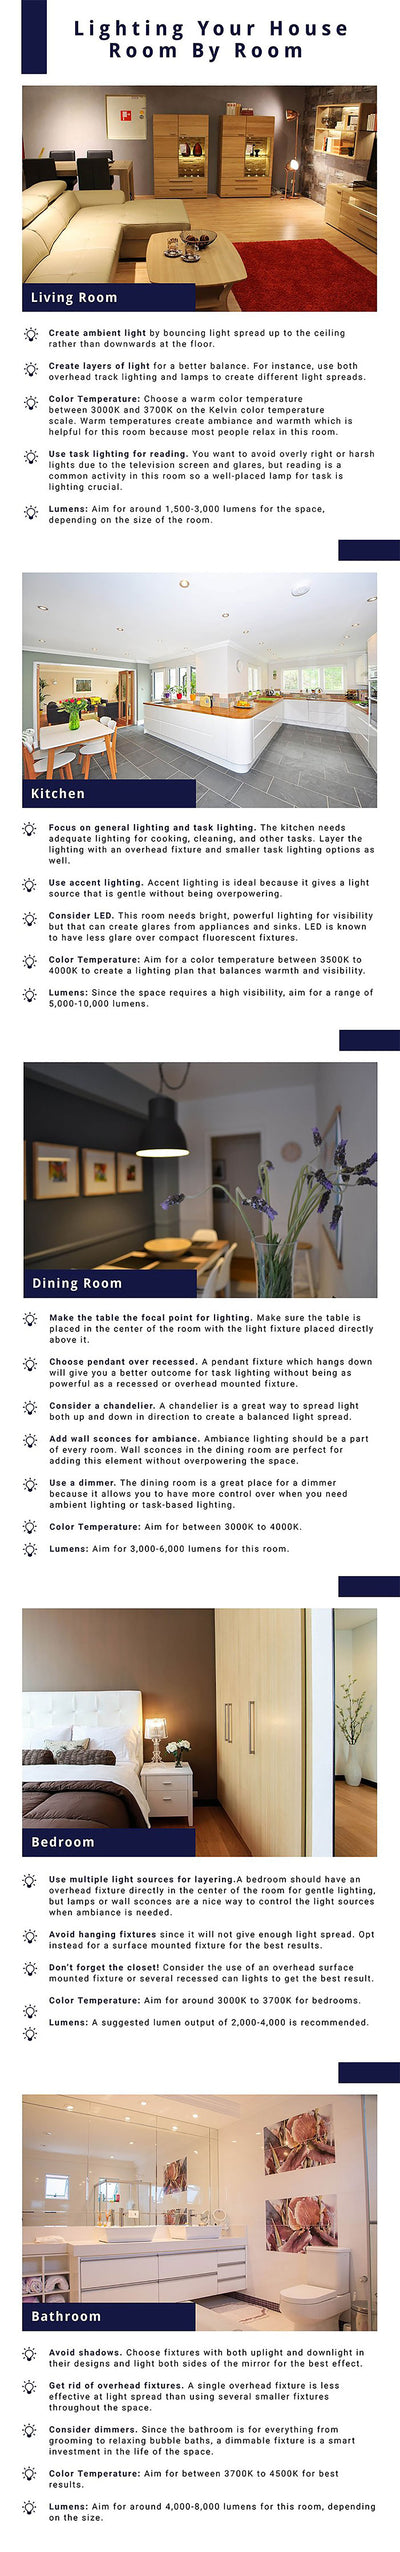 Lighting Your House Room By Room [INFOGRAPHIC]